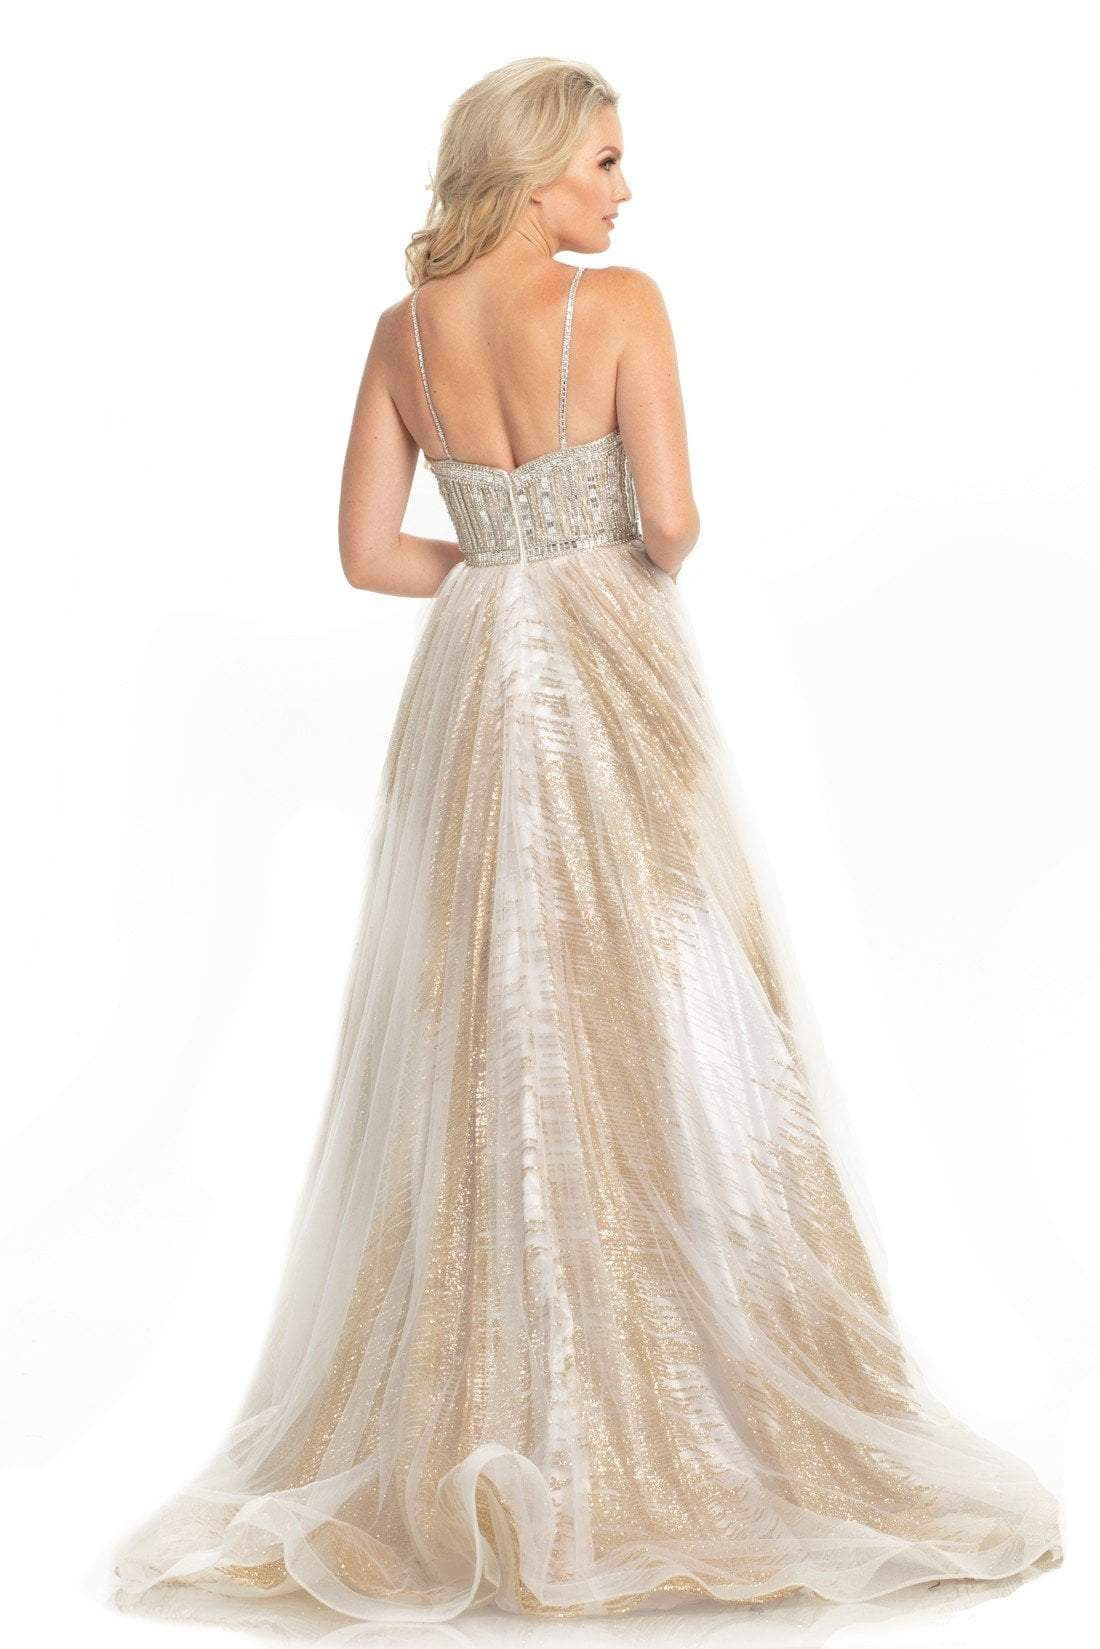 Johnathan Kayne - 9067 Sleeveless Sparkly Glitter Mesh A-Line Gown In White and Gold